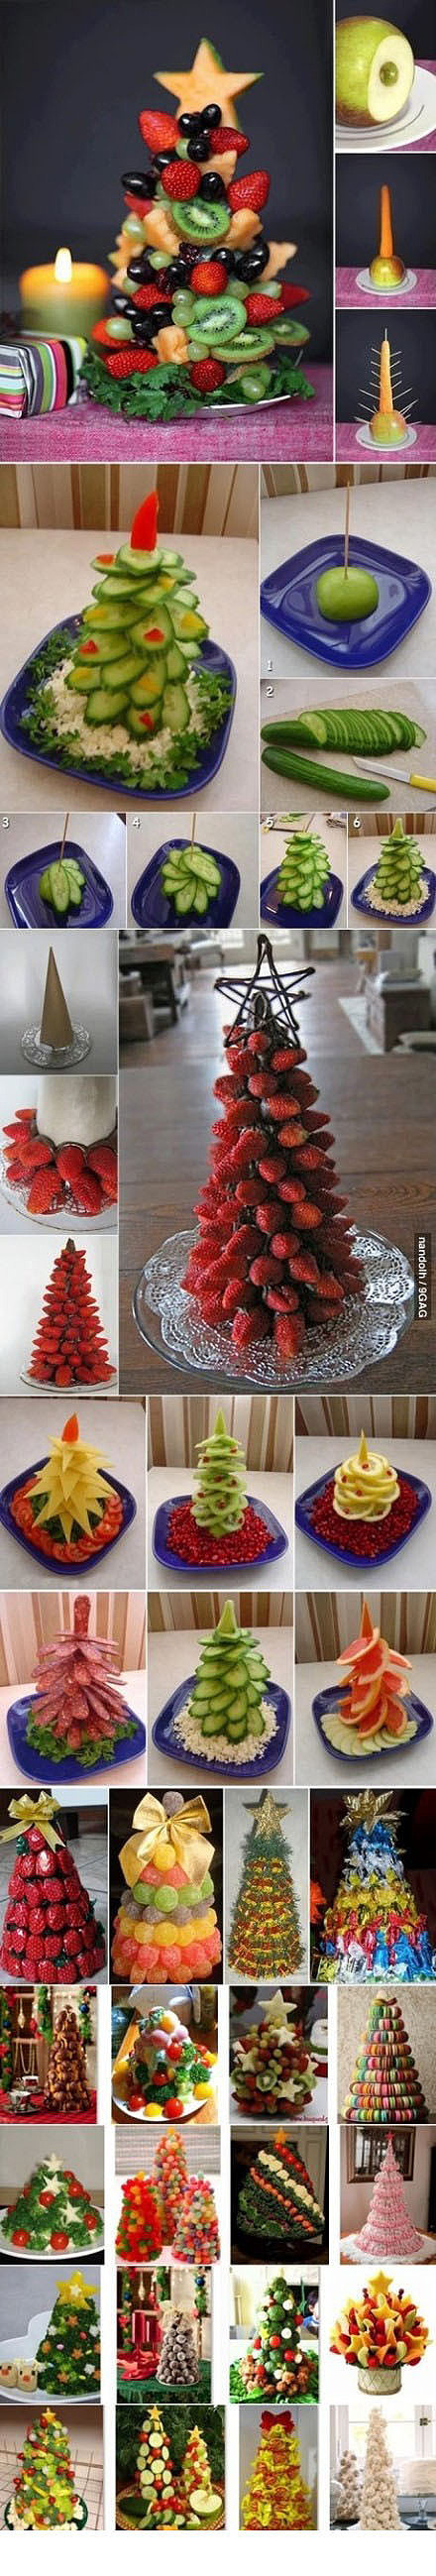 30 ways to make fruit Christmas trees